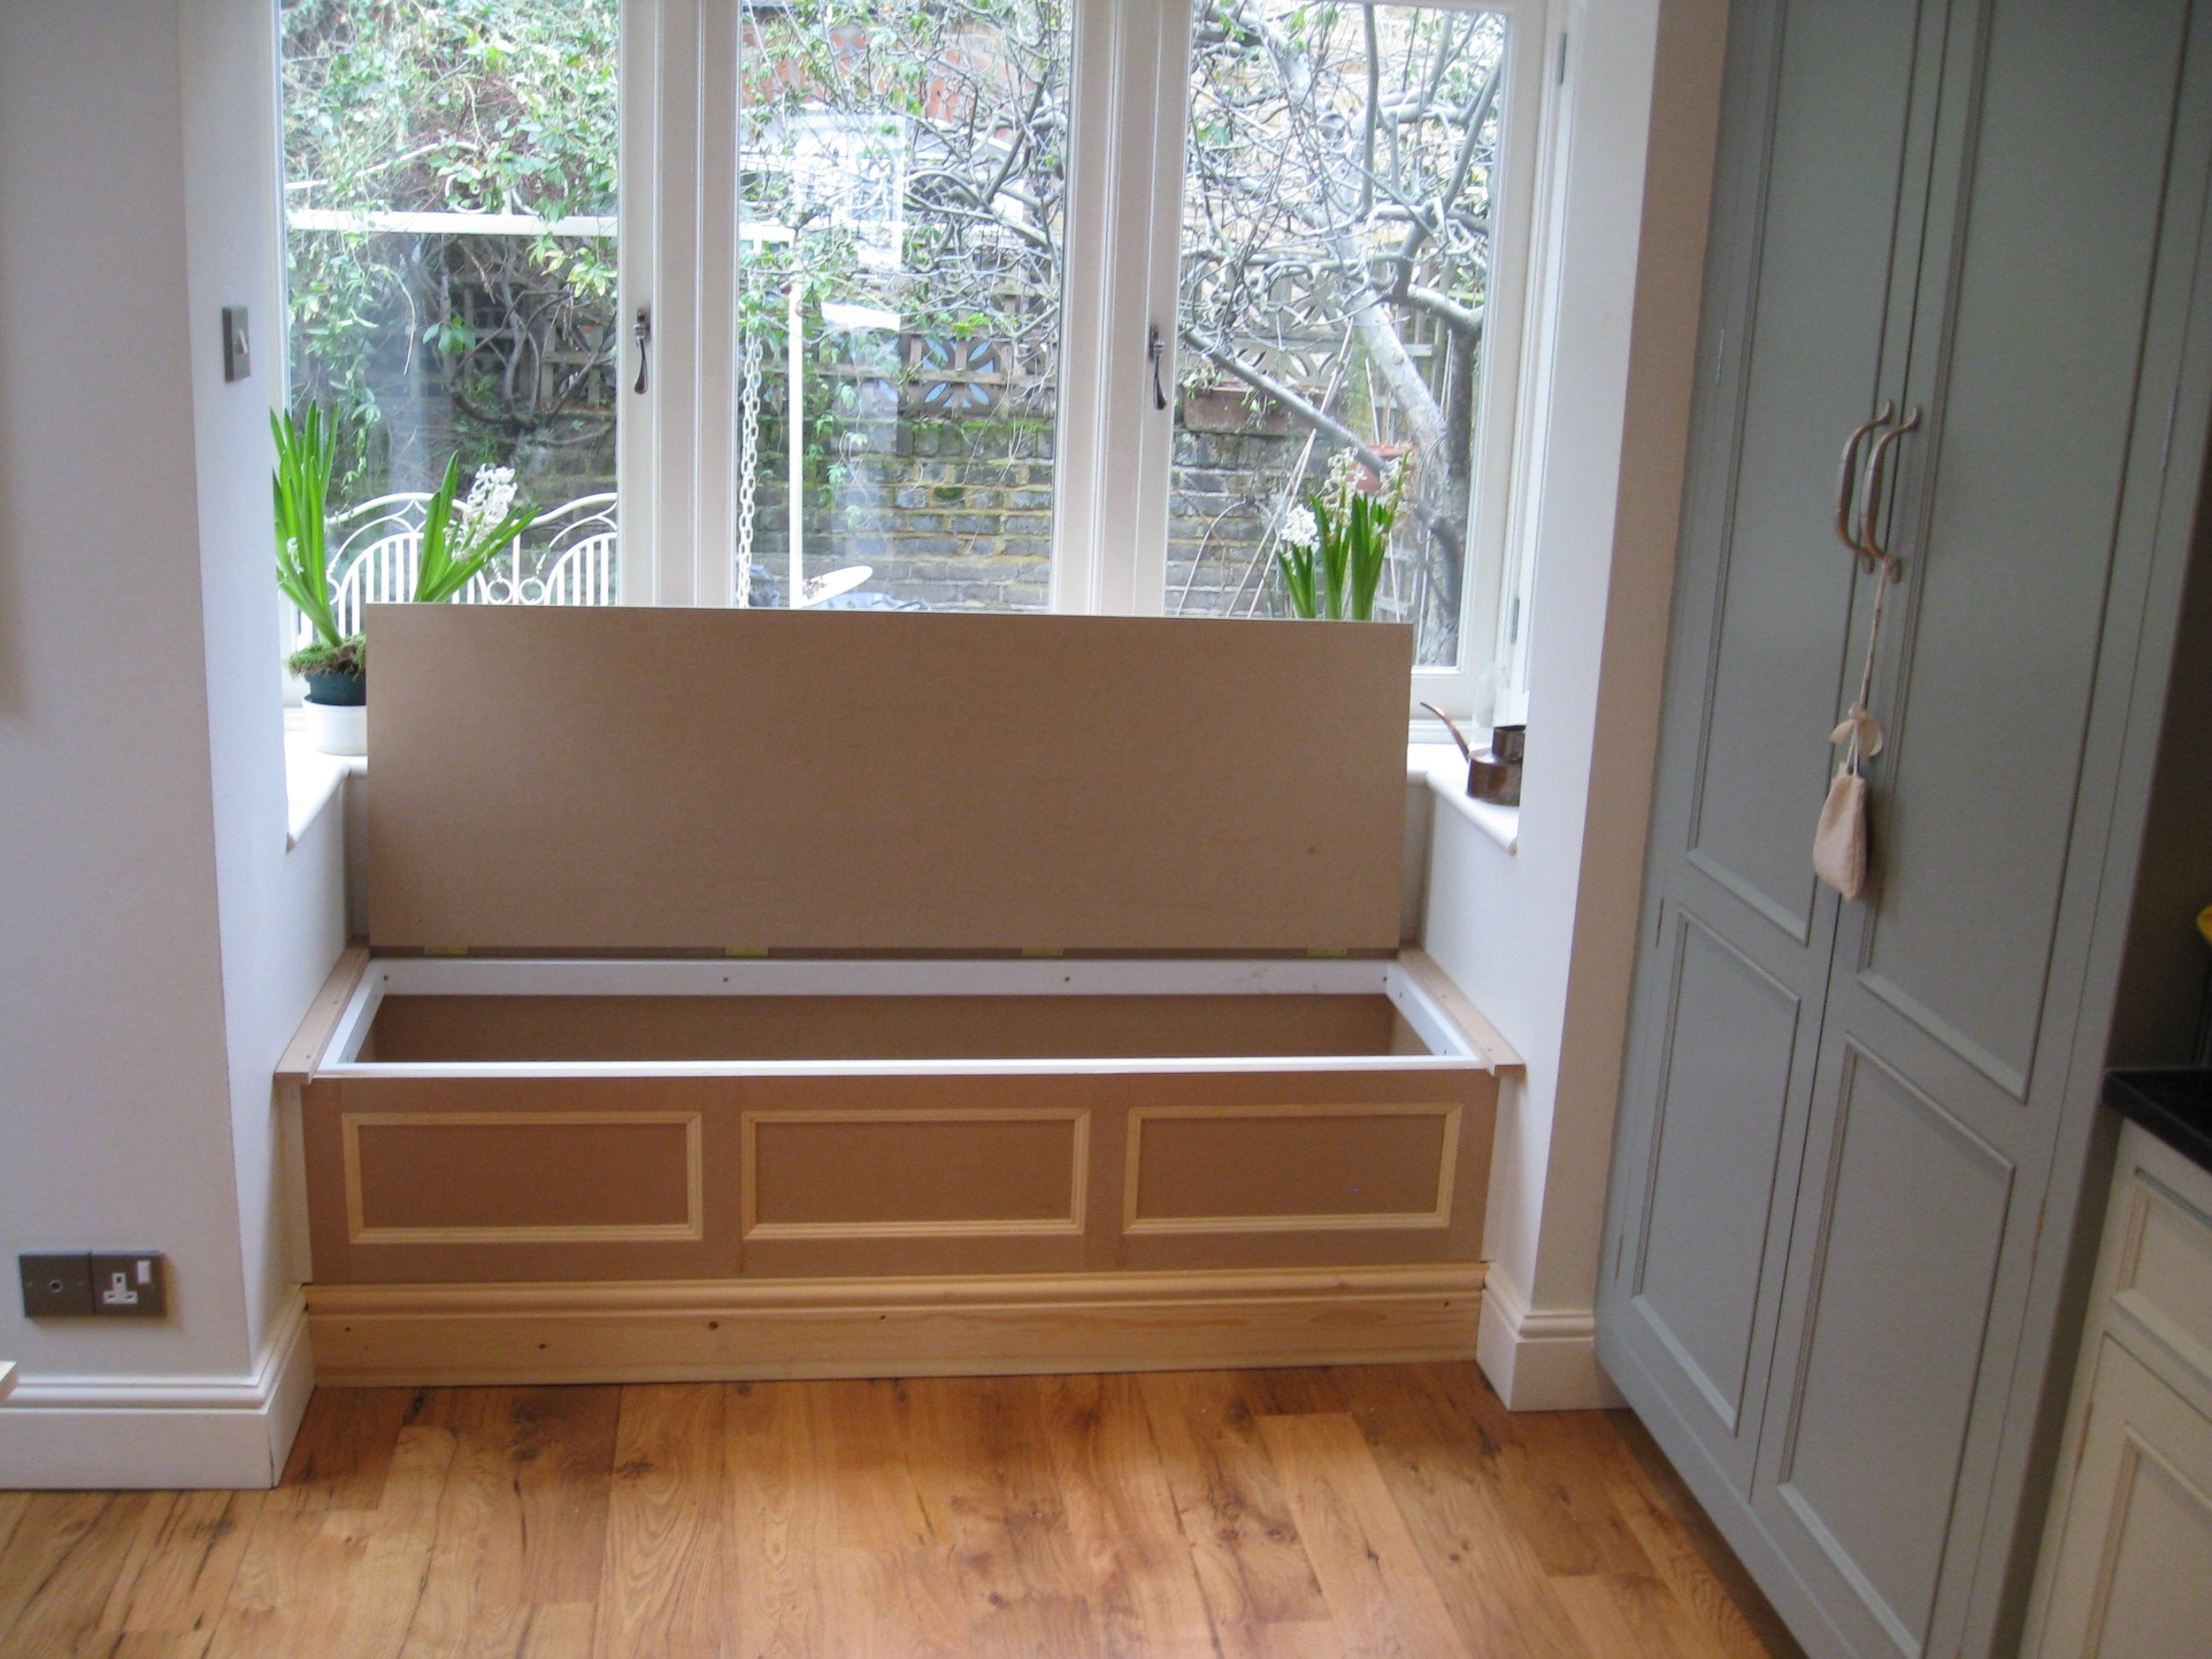 A bay window, which could include a window seat provides light